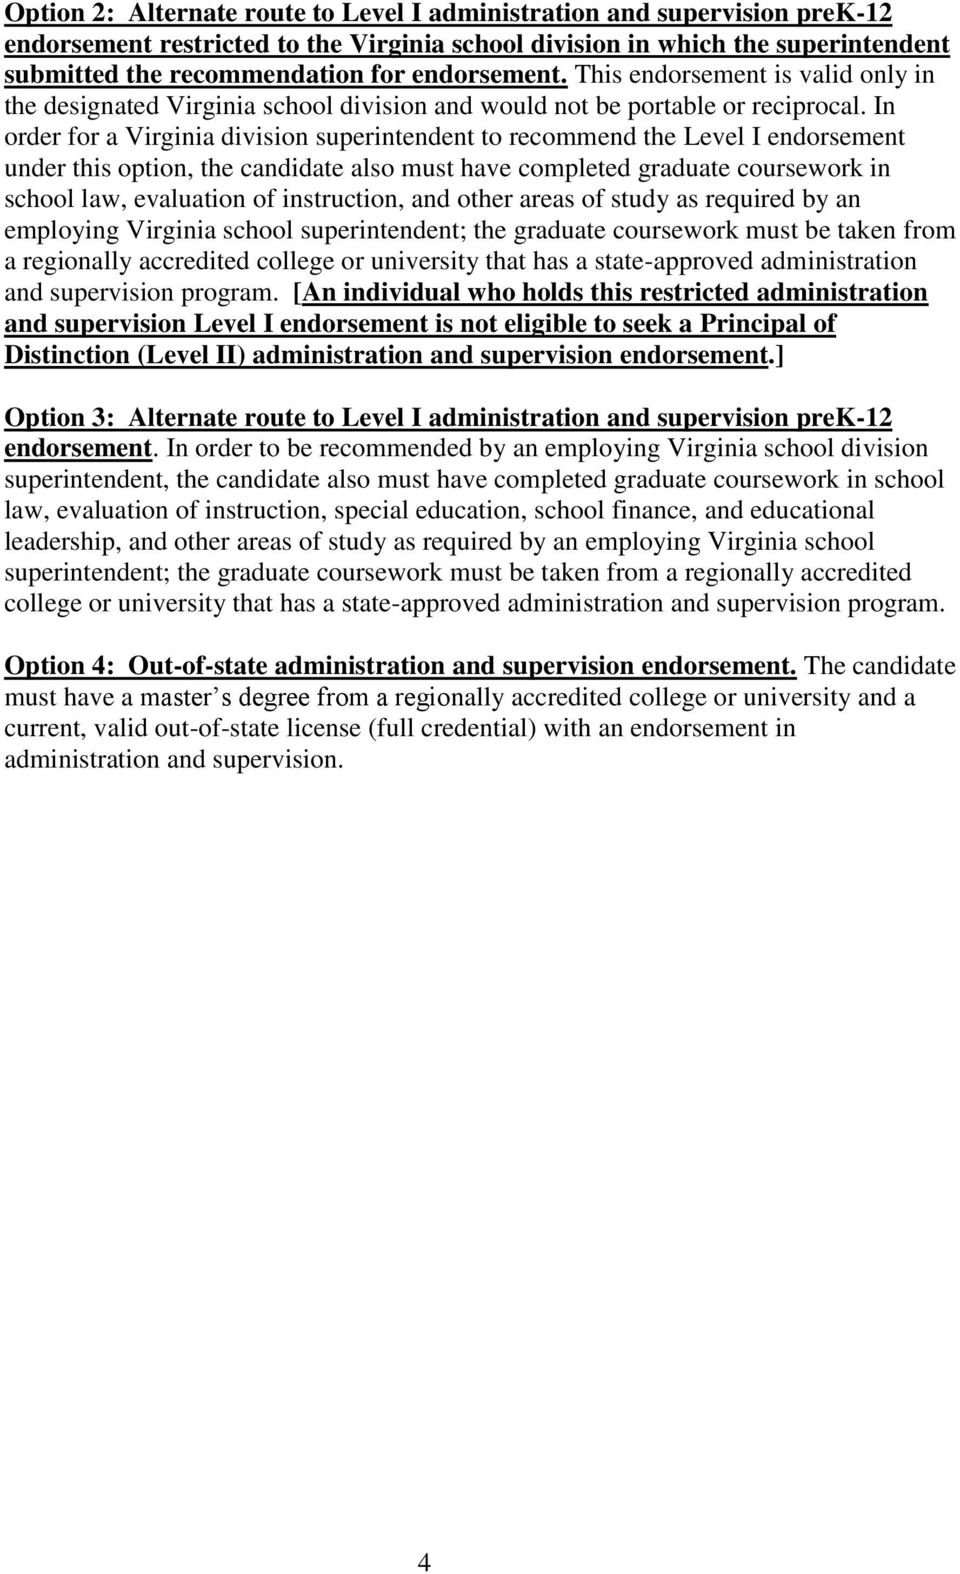 In order for a Virginia division superintendent to recommend the Level I endorsement under this option, the candidate also must have completed graduate coursework in school law, evaluation of